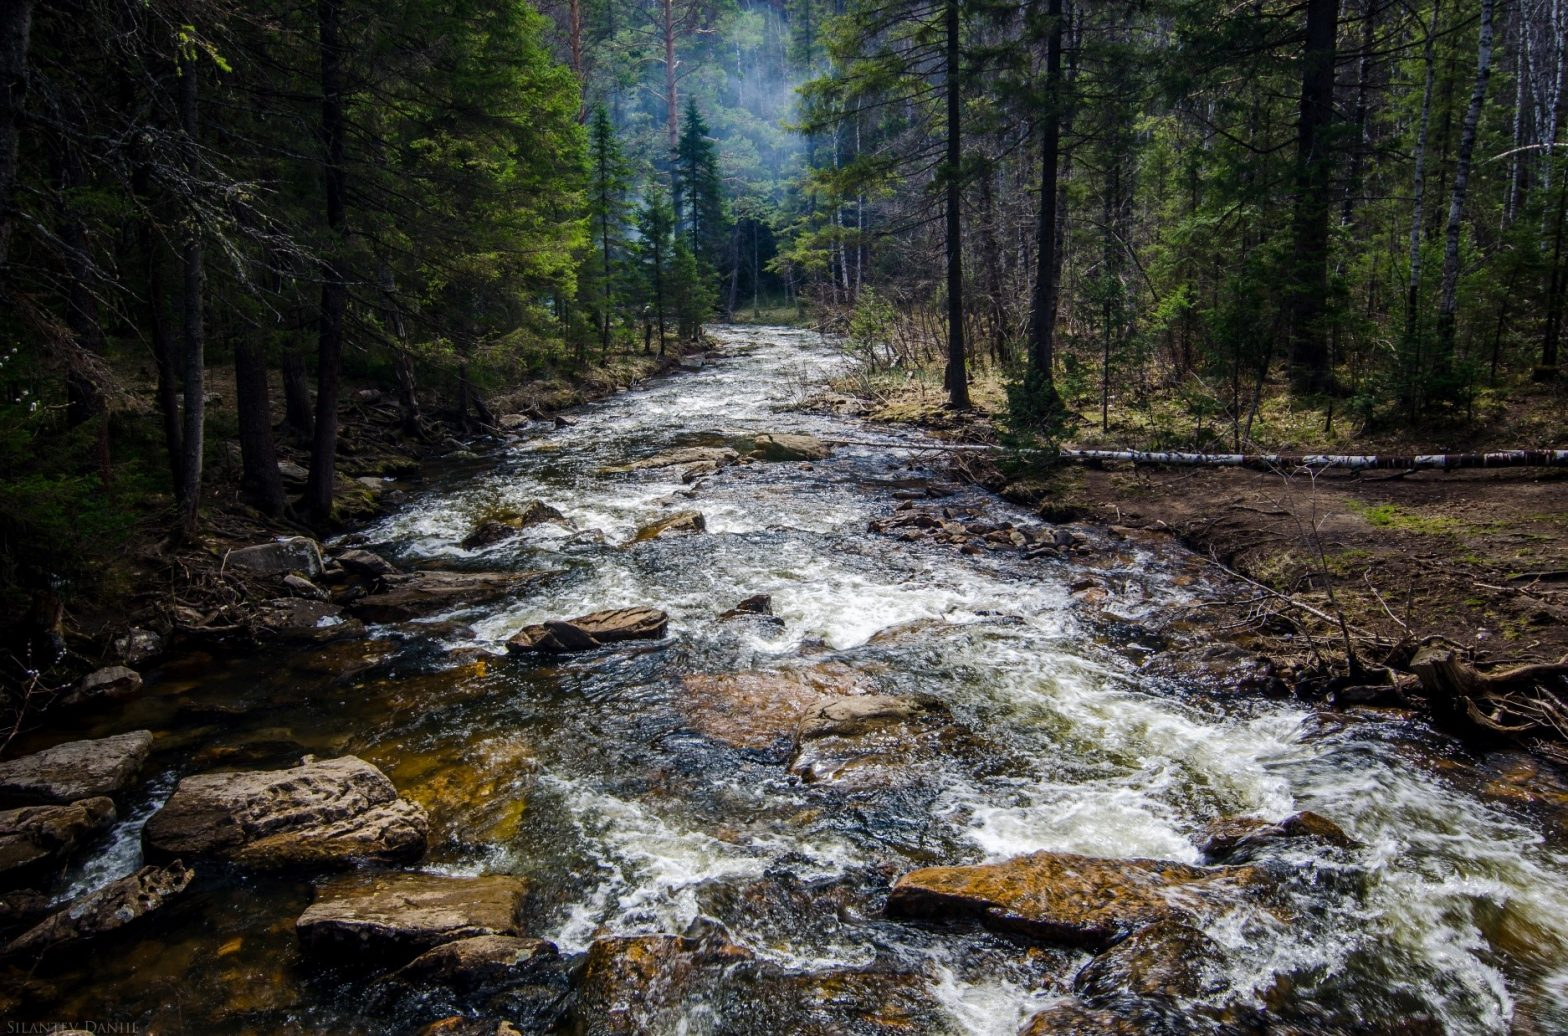 river running through forest